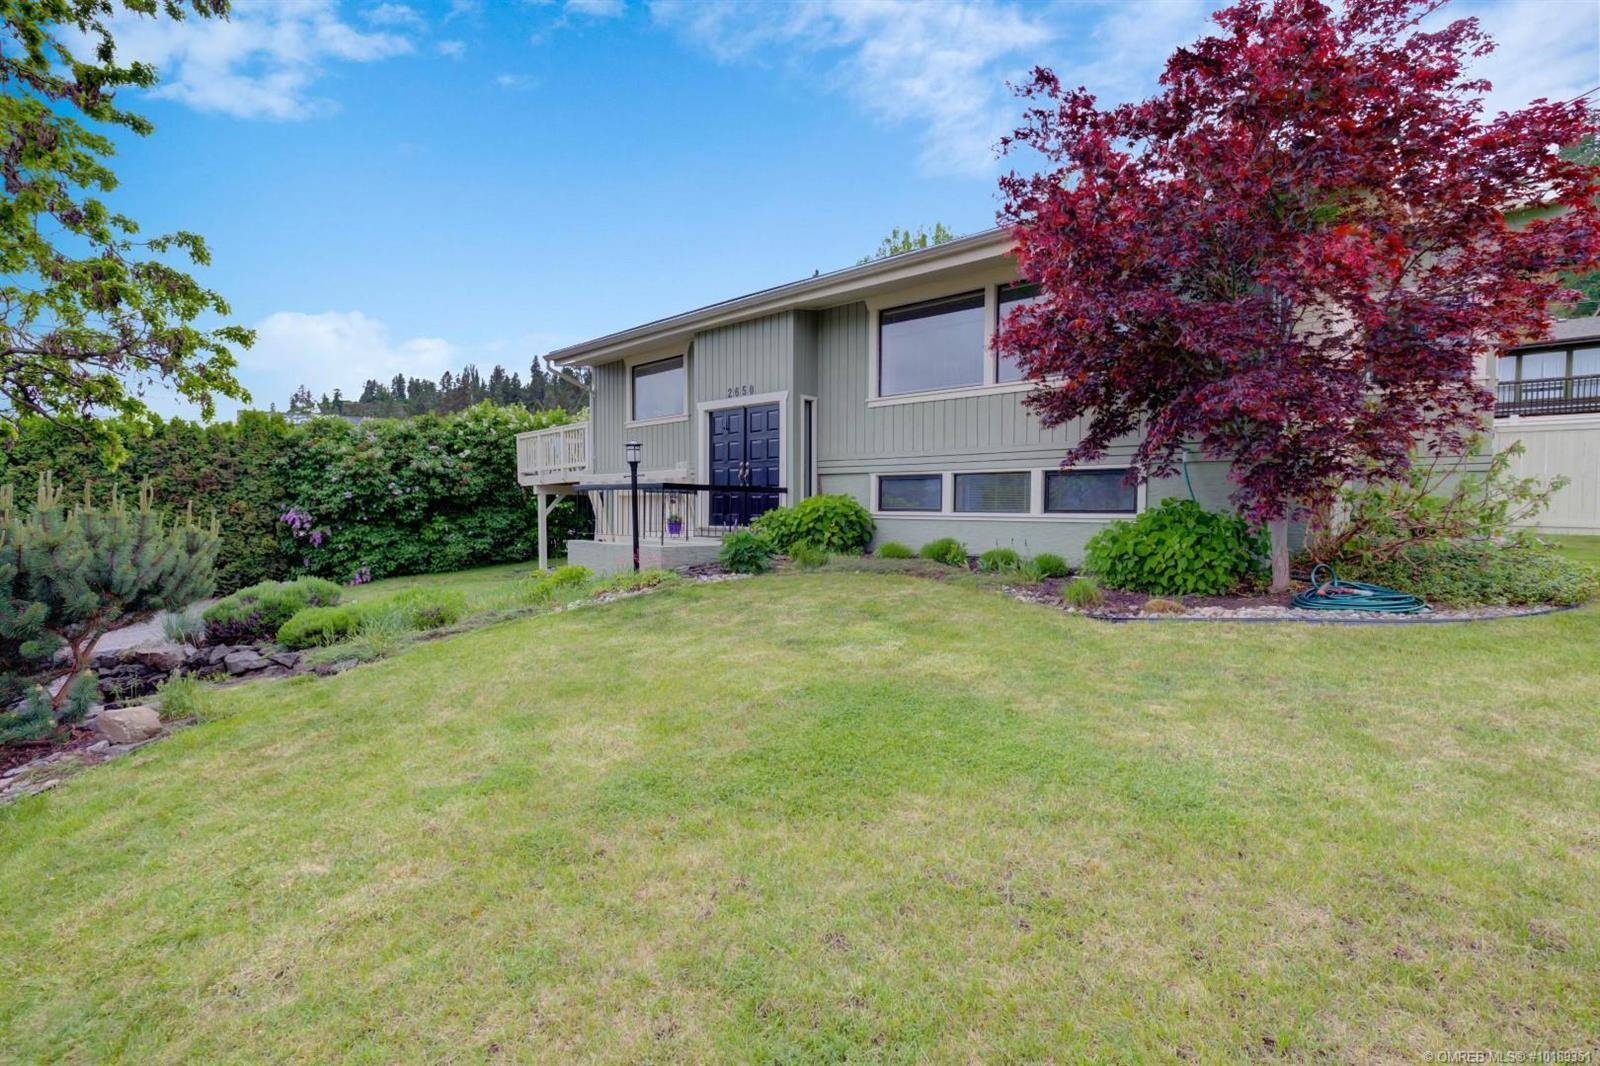 House for sale at 2650 Campbell Rd Kelowna British Columbia - MLS: 10189351